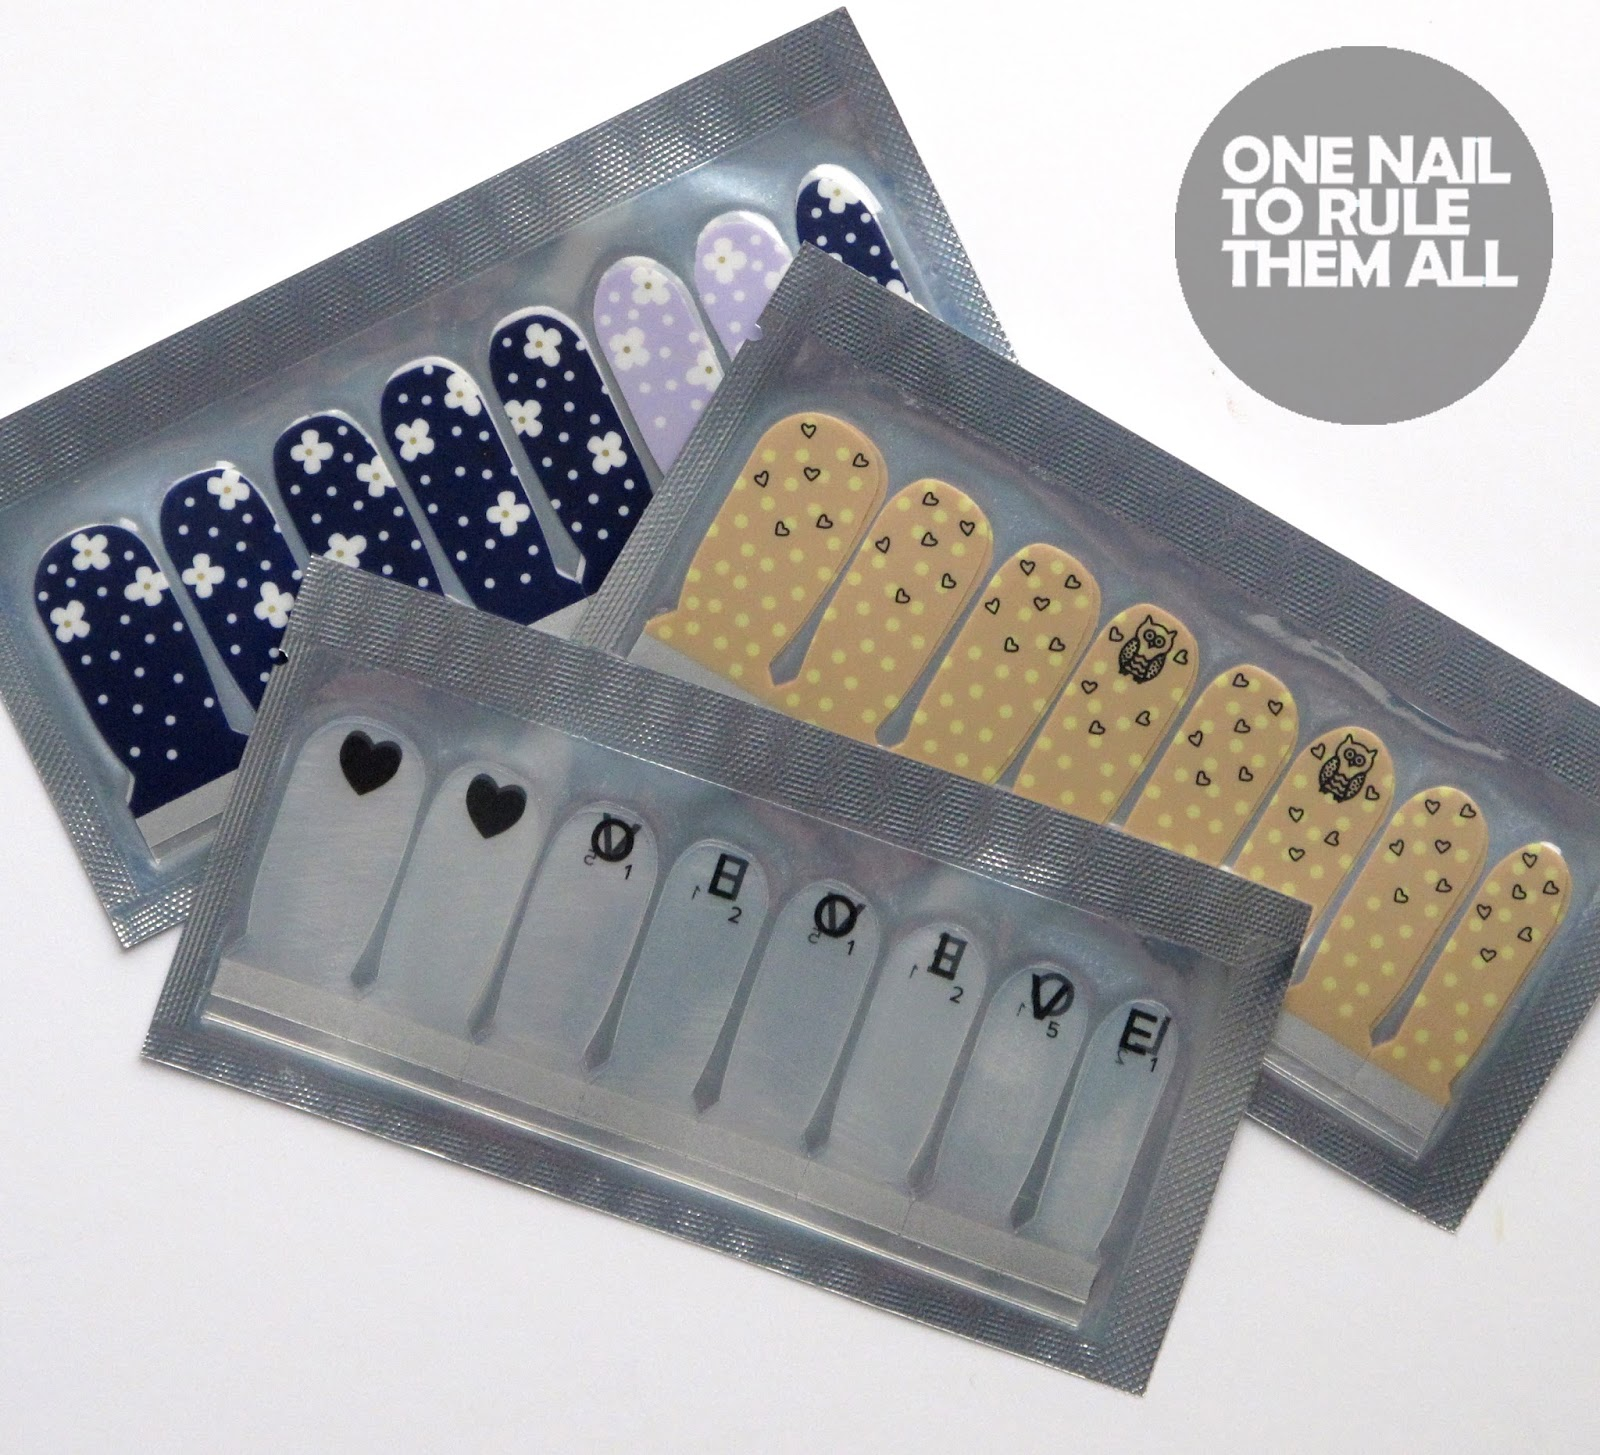 Then And Now Scrabble Love Nails Nail Art Designs